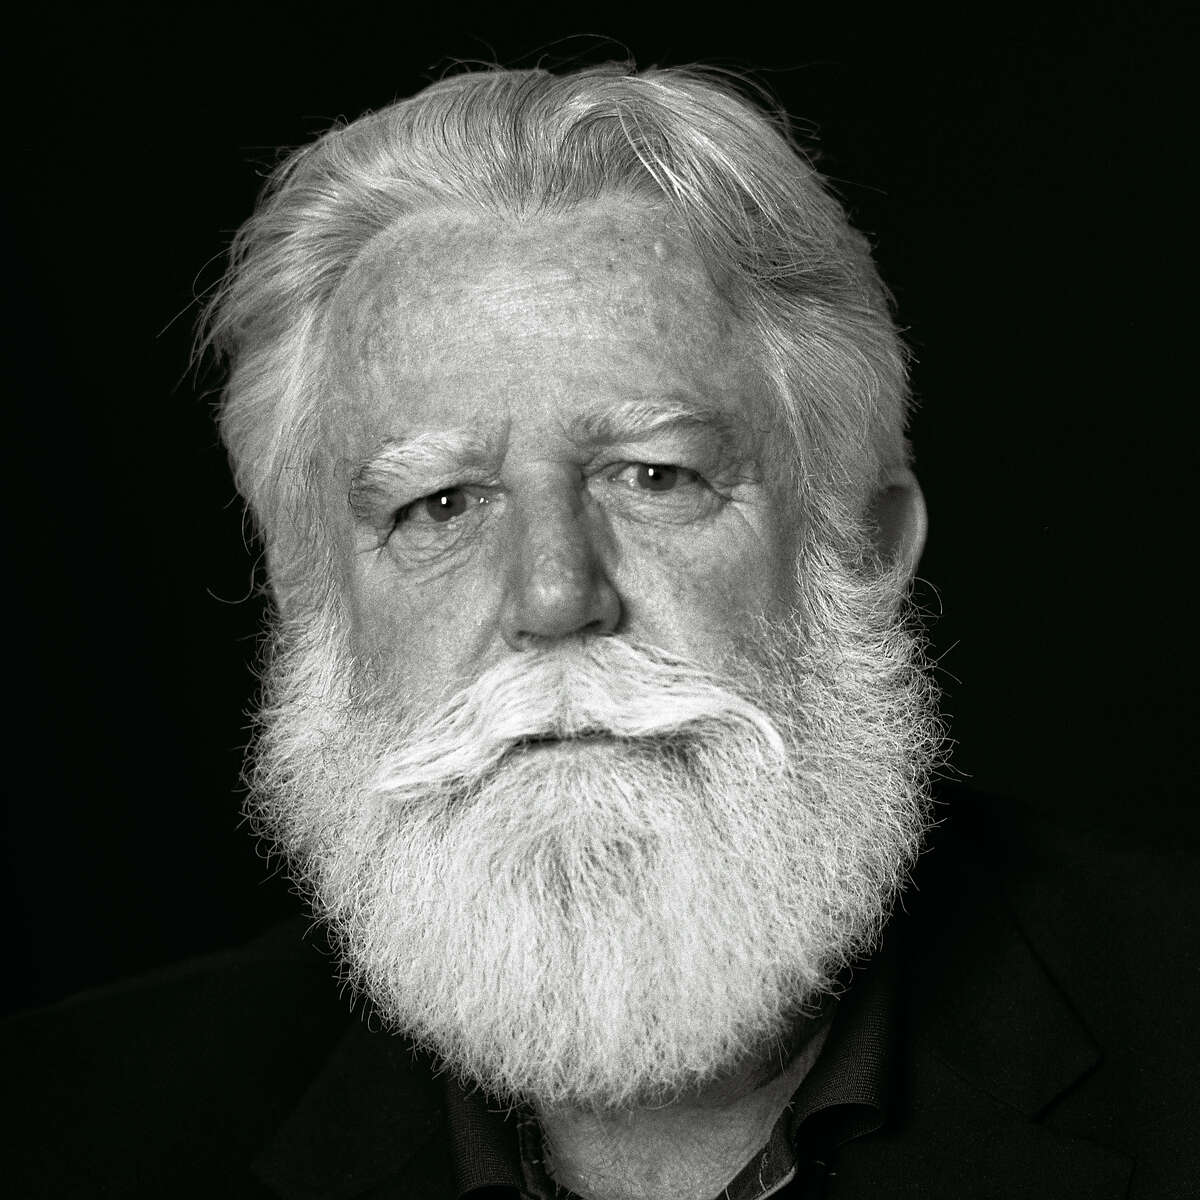 James Turrell, 70, continues to work on his Roden Crater project.